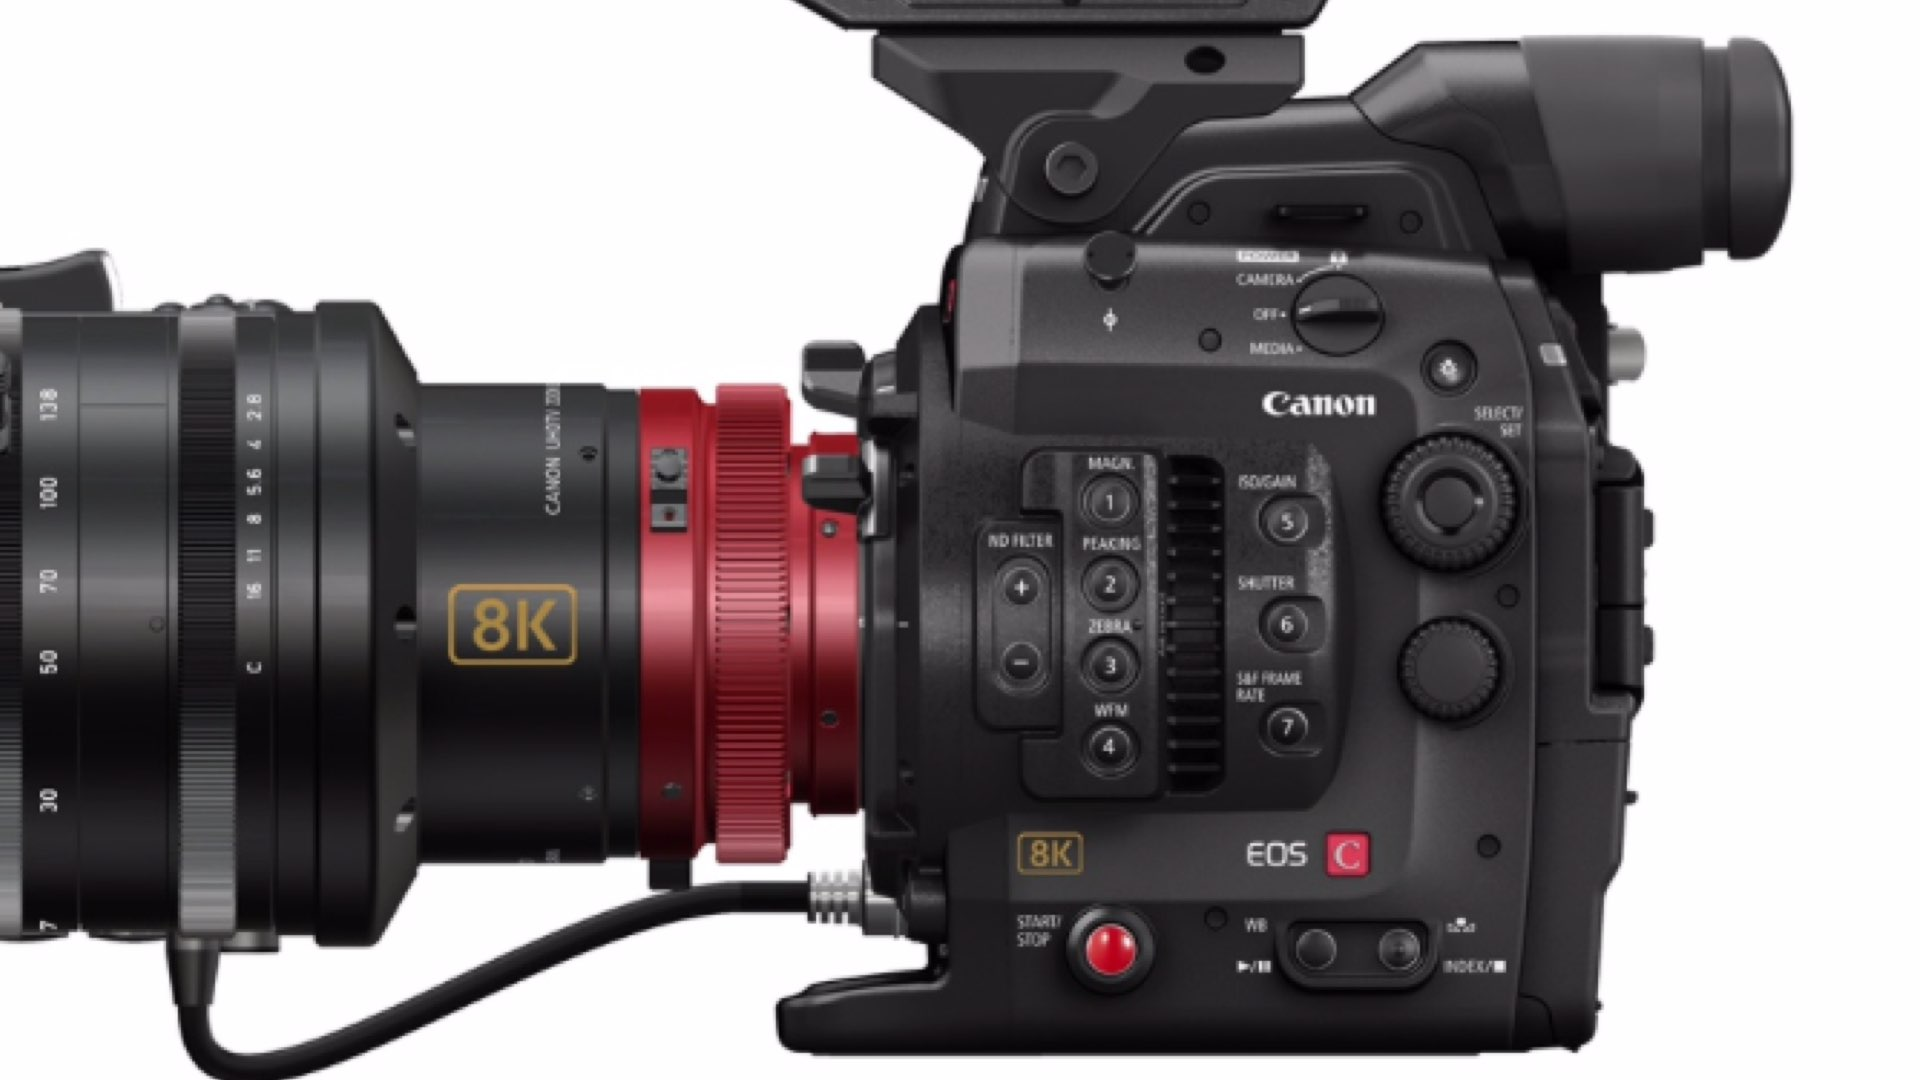 Canon C300 Mark III 8K Full Frame: The NAB Show 2019's